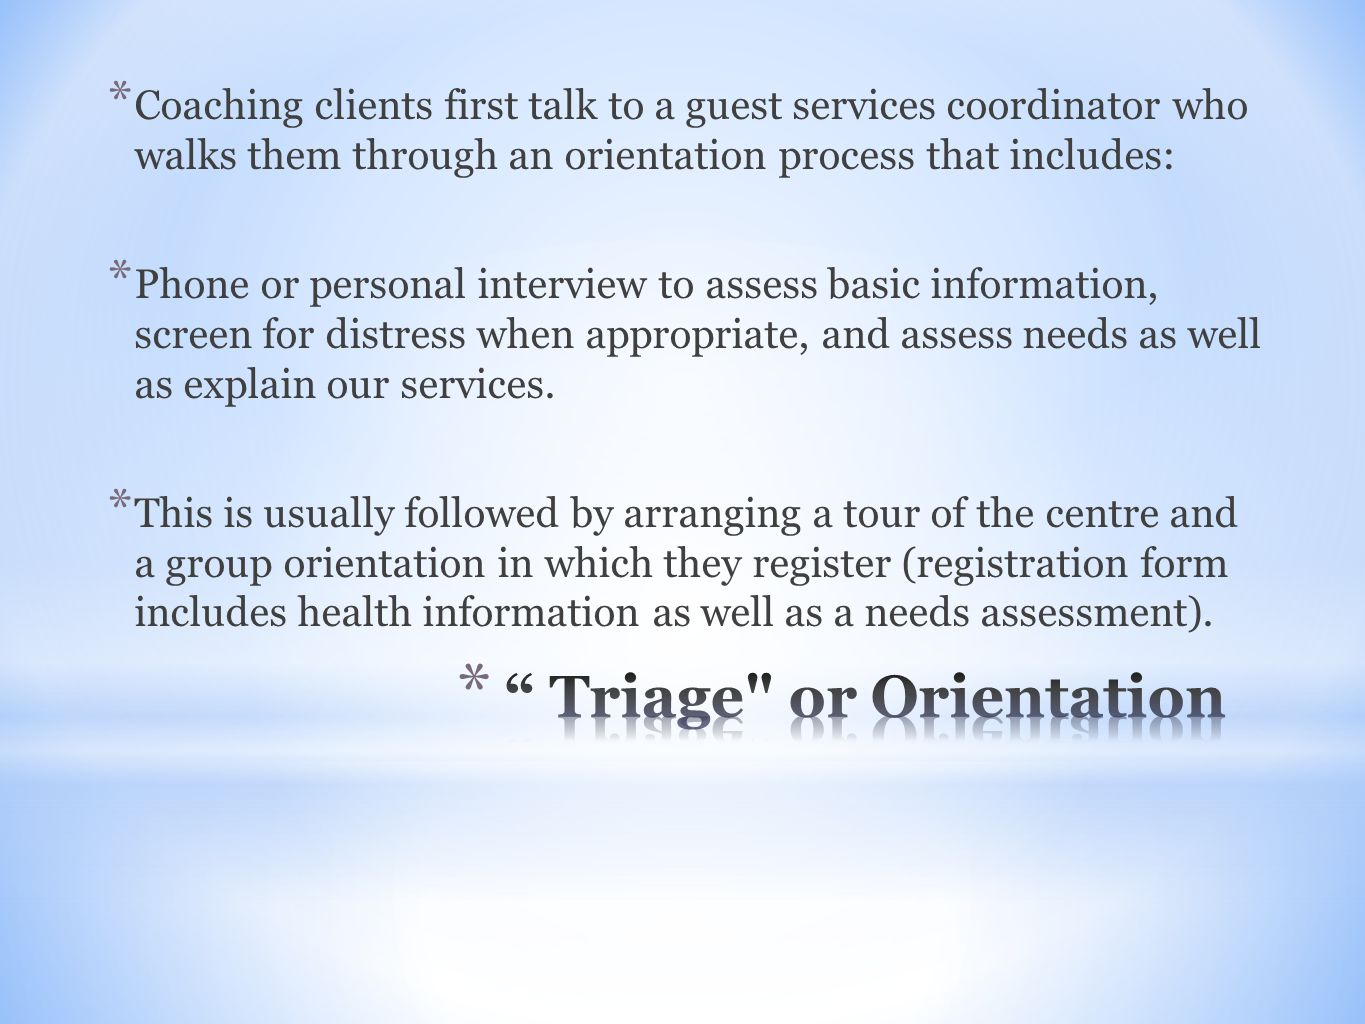 * Coaching clients first talk to a guest services coordinator who walks them through an orientation process that includes: * Phone or personal interview to assess basic information, screen for distress when appropriate, and assess needs as well as explain our services.